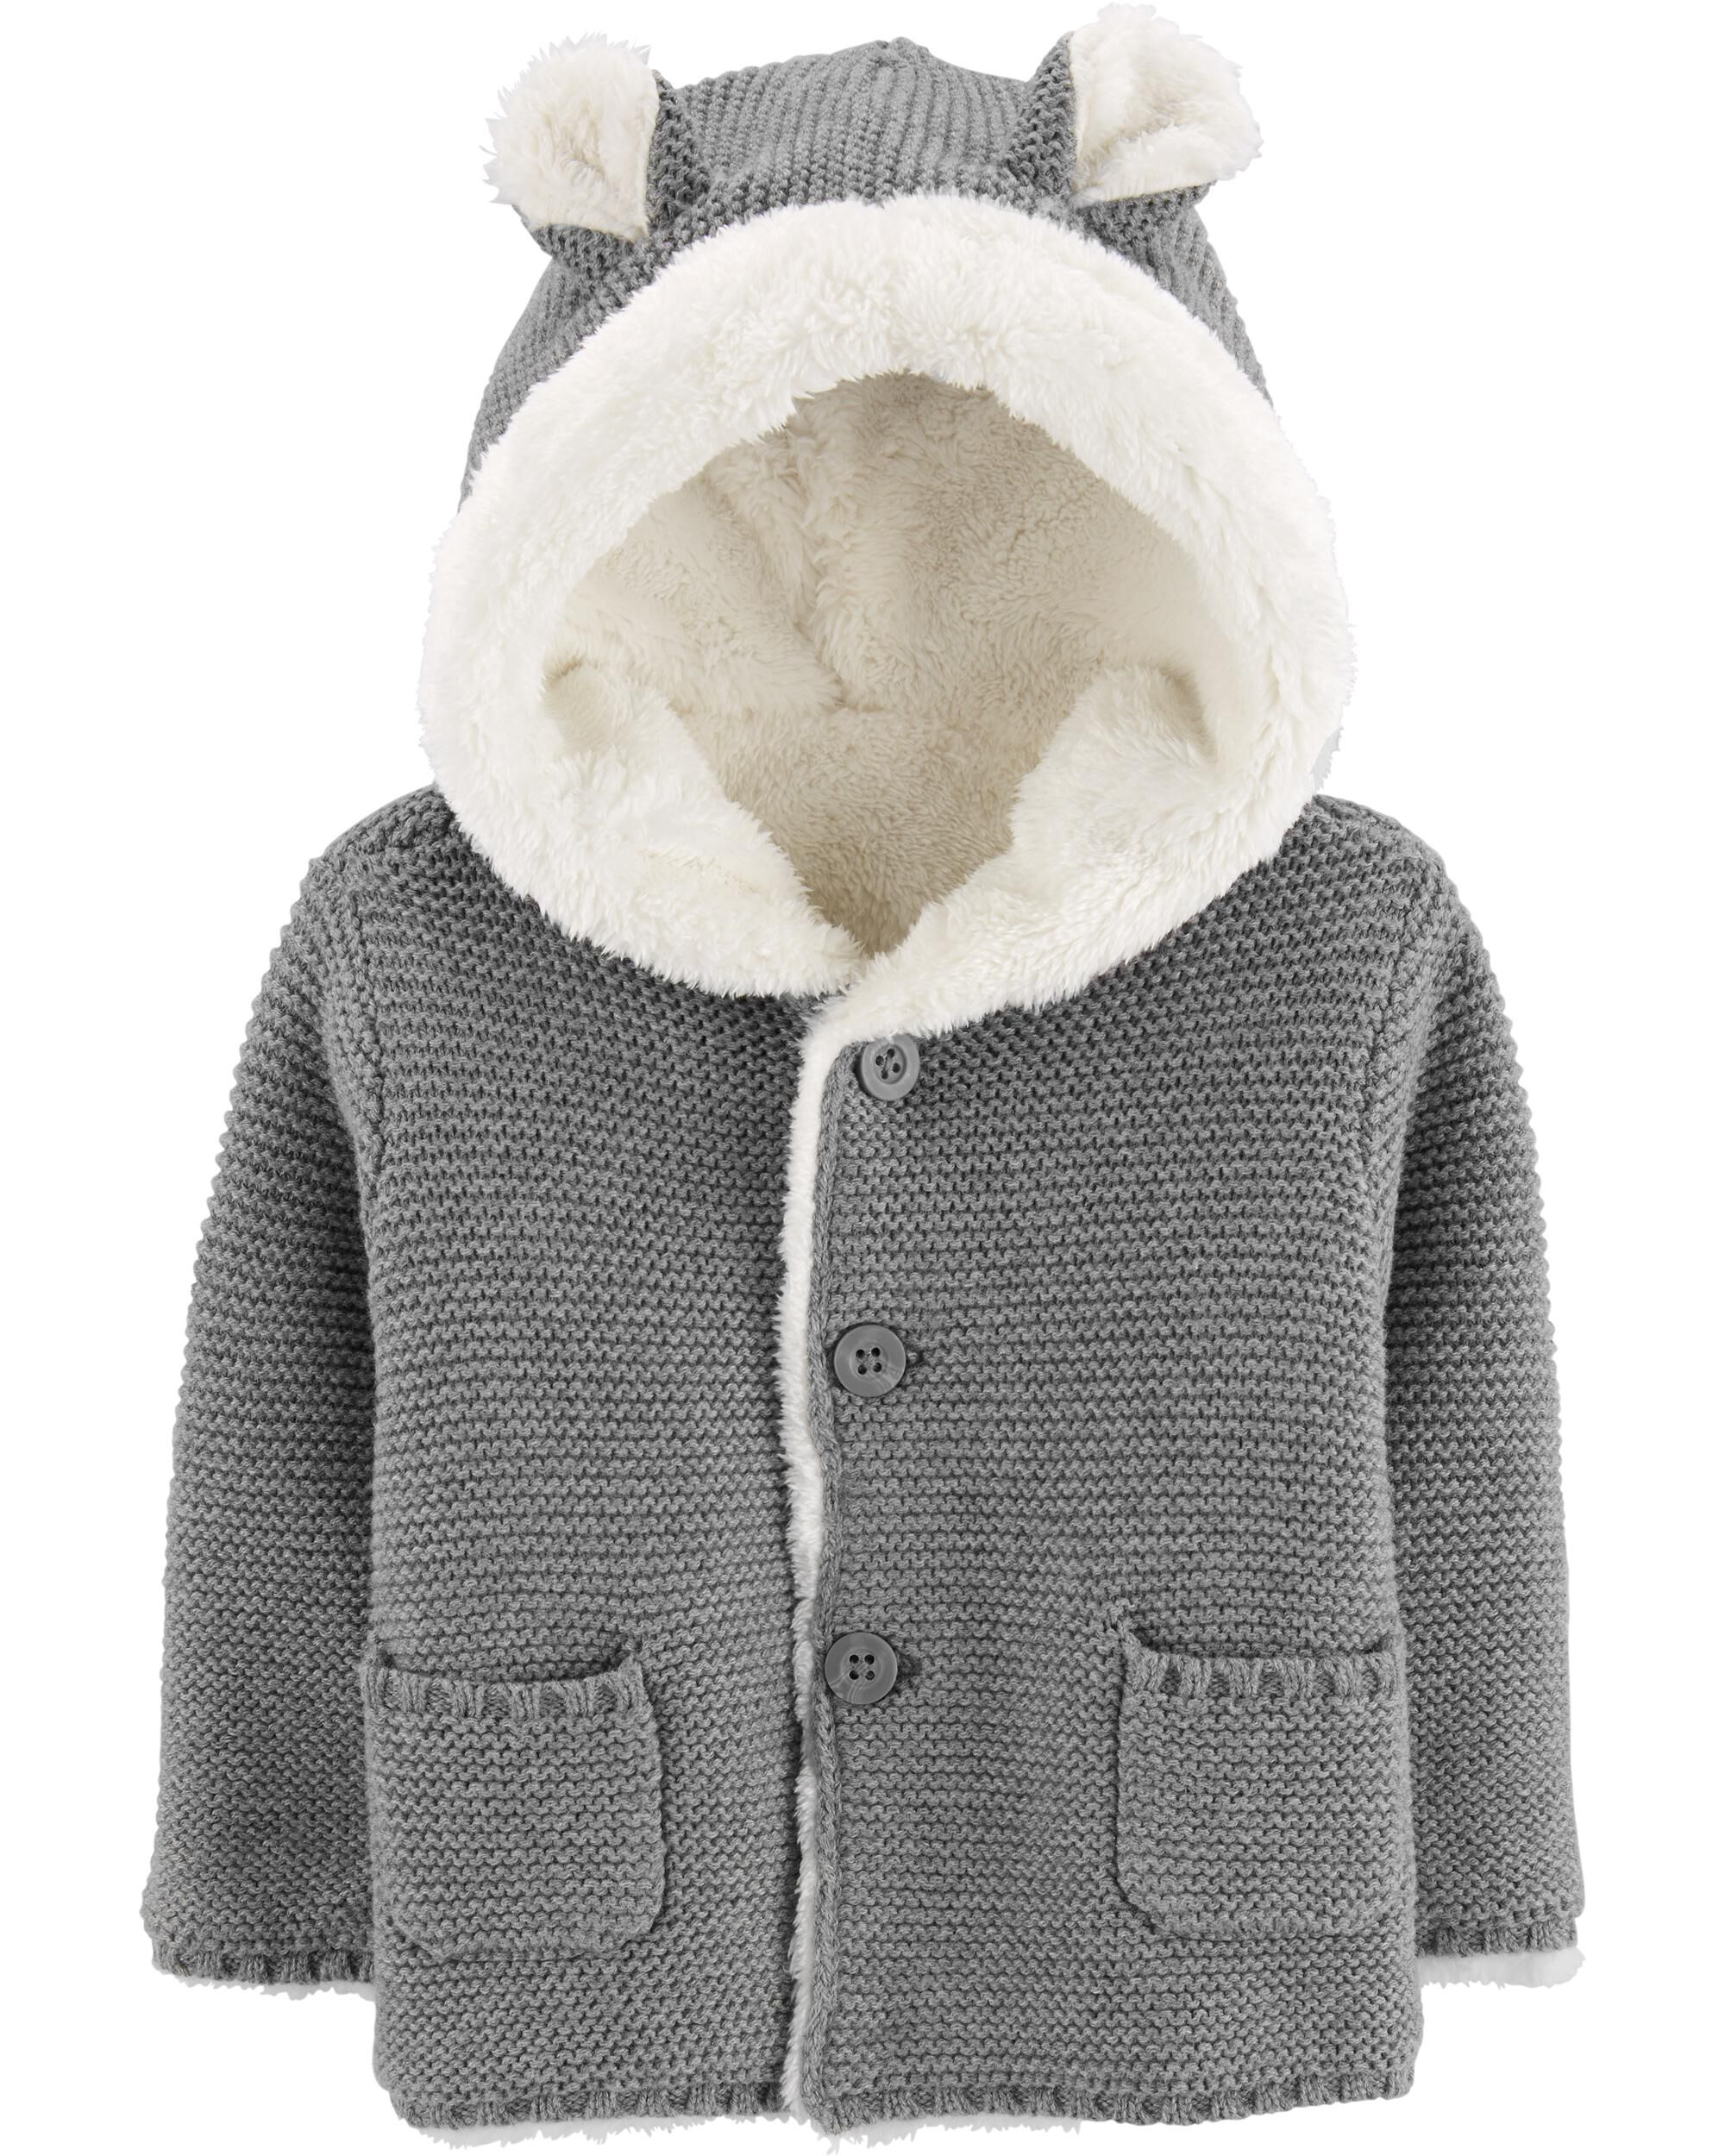 Sherpa-Lined Hooded Cardigan